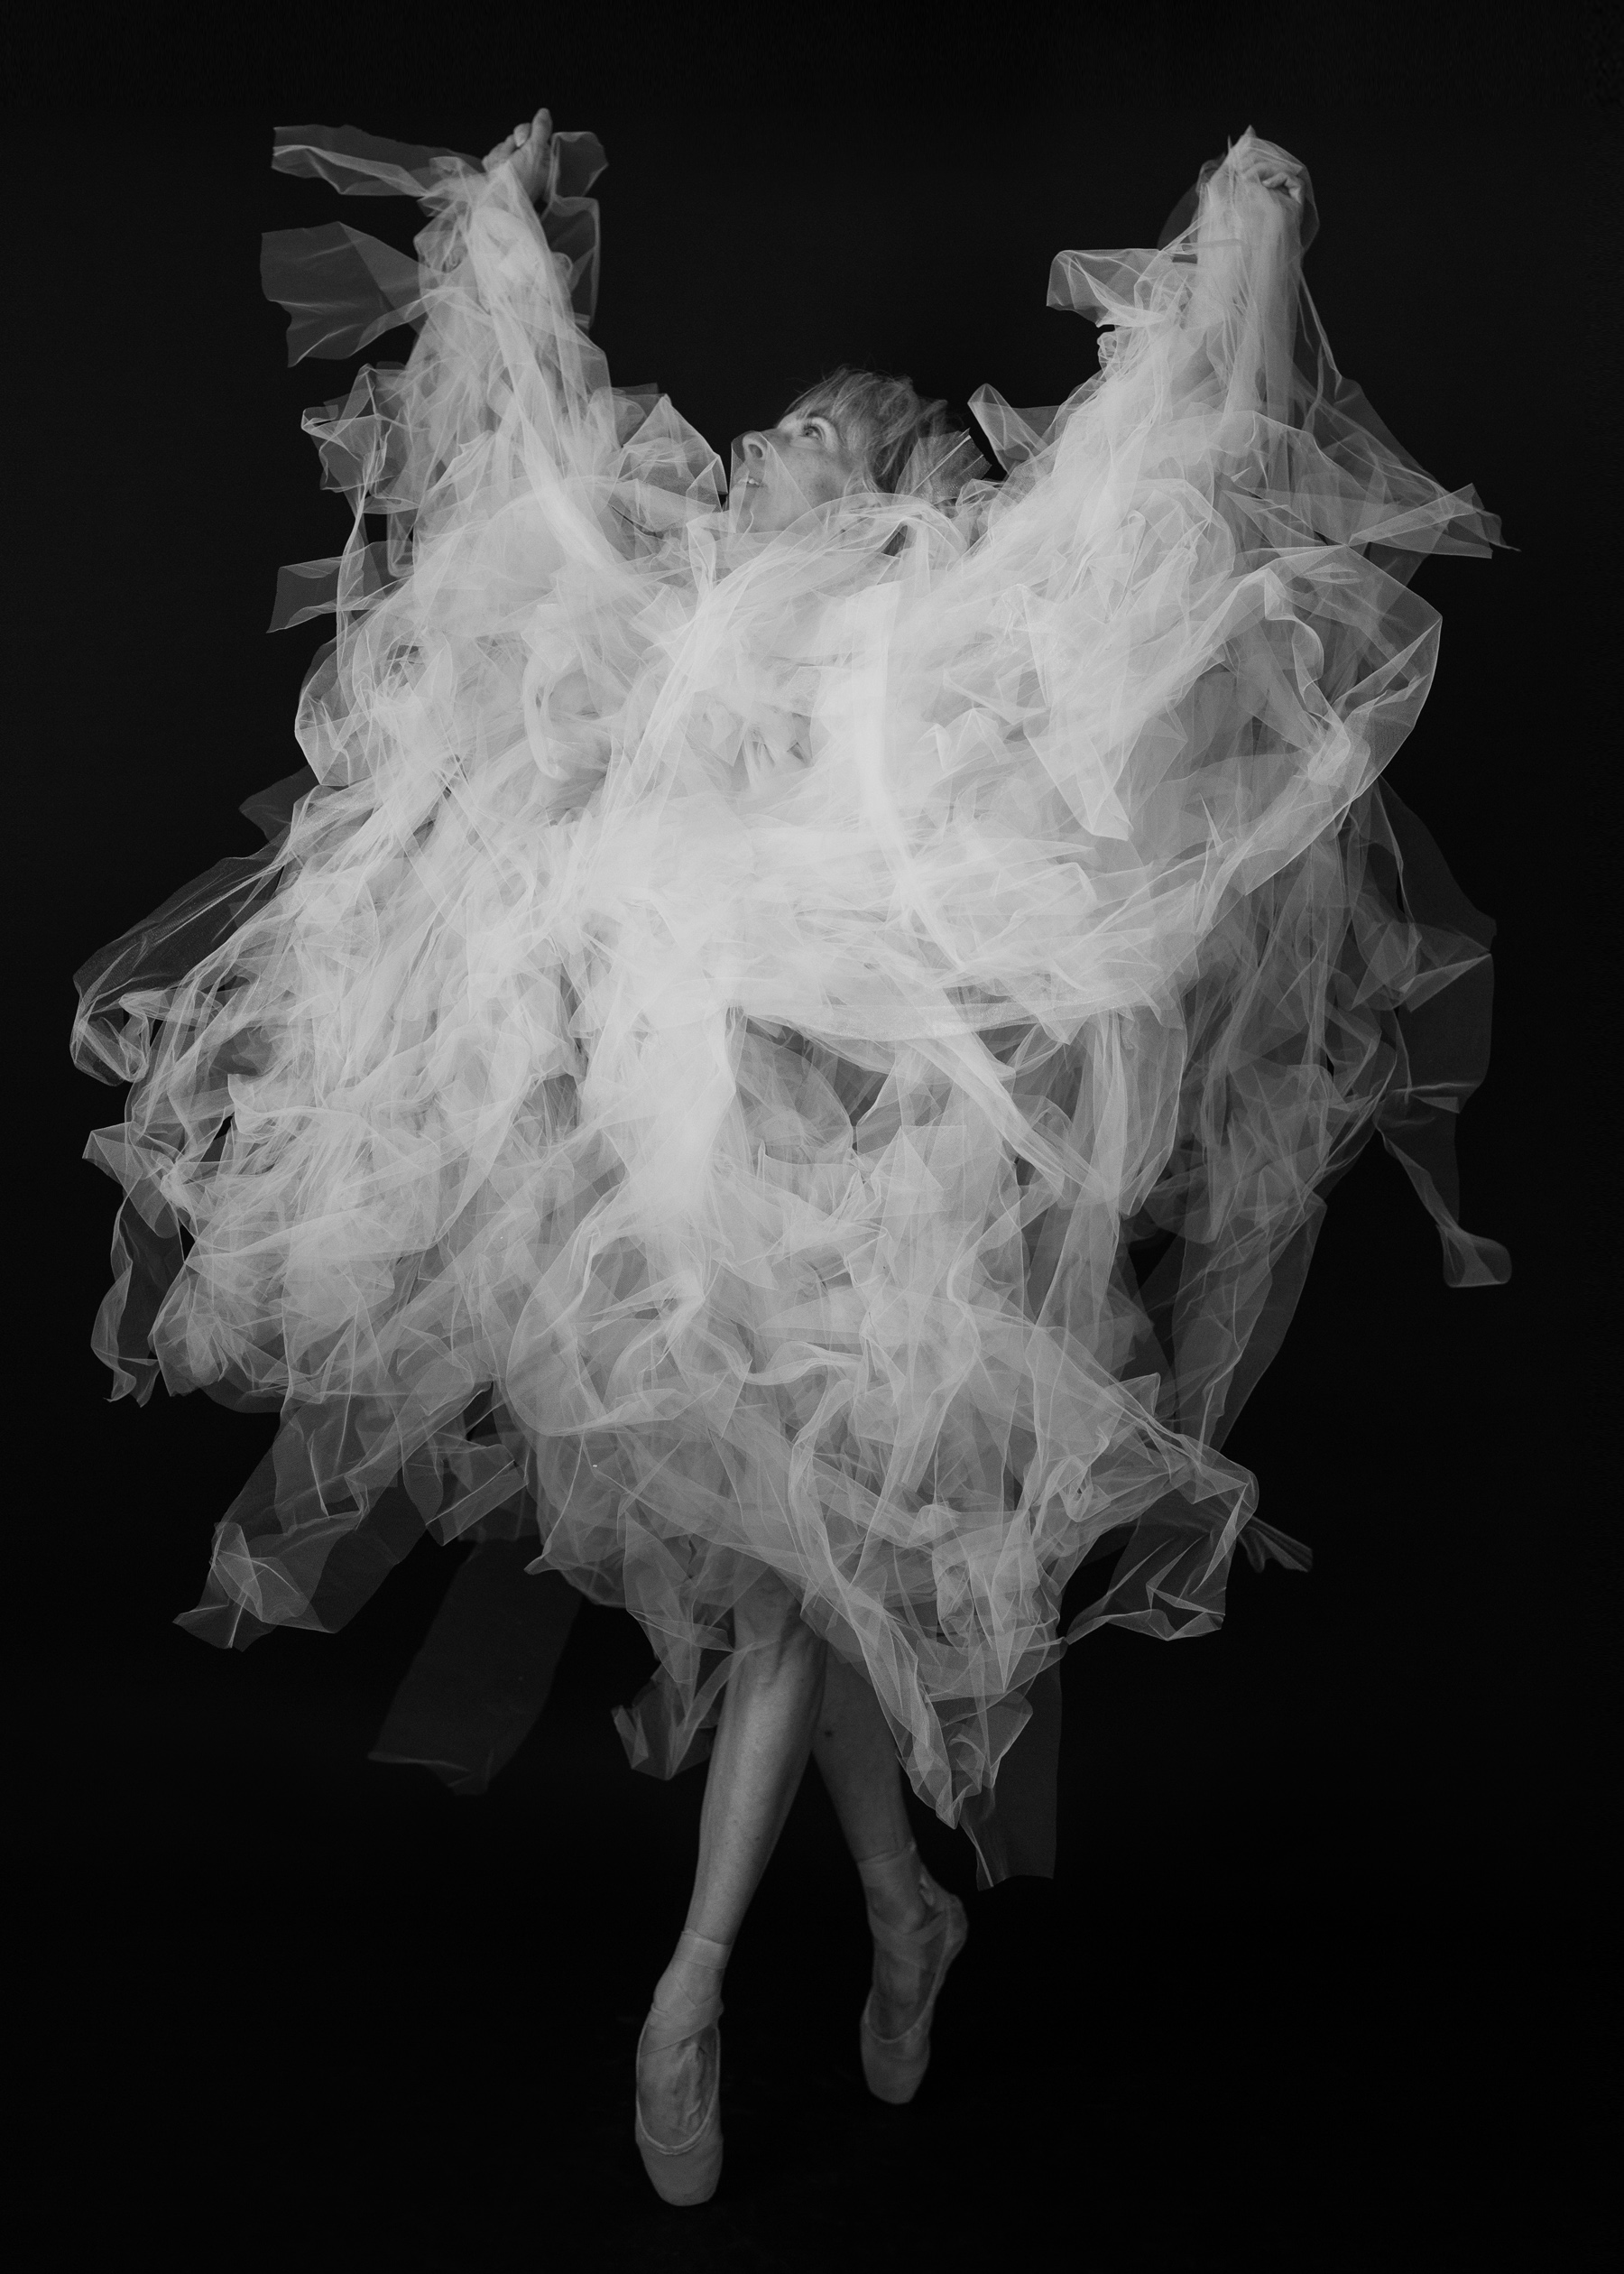 Valerie strikes triumphant pose in flowing tulle during photo session with Denver dance photographer Jennifer Koskinen